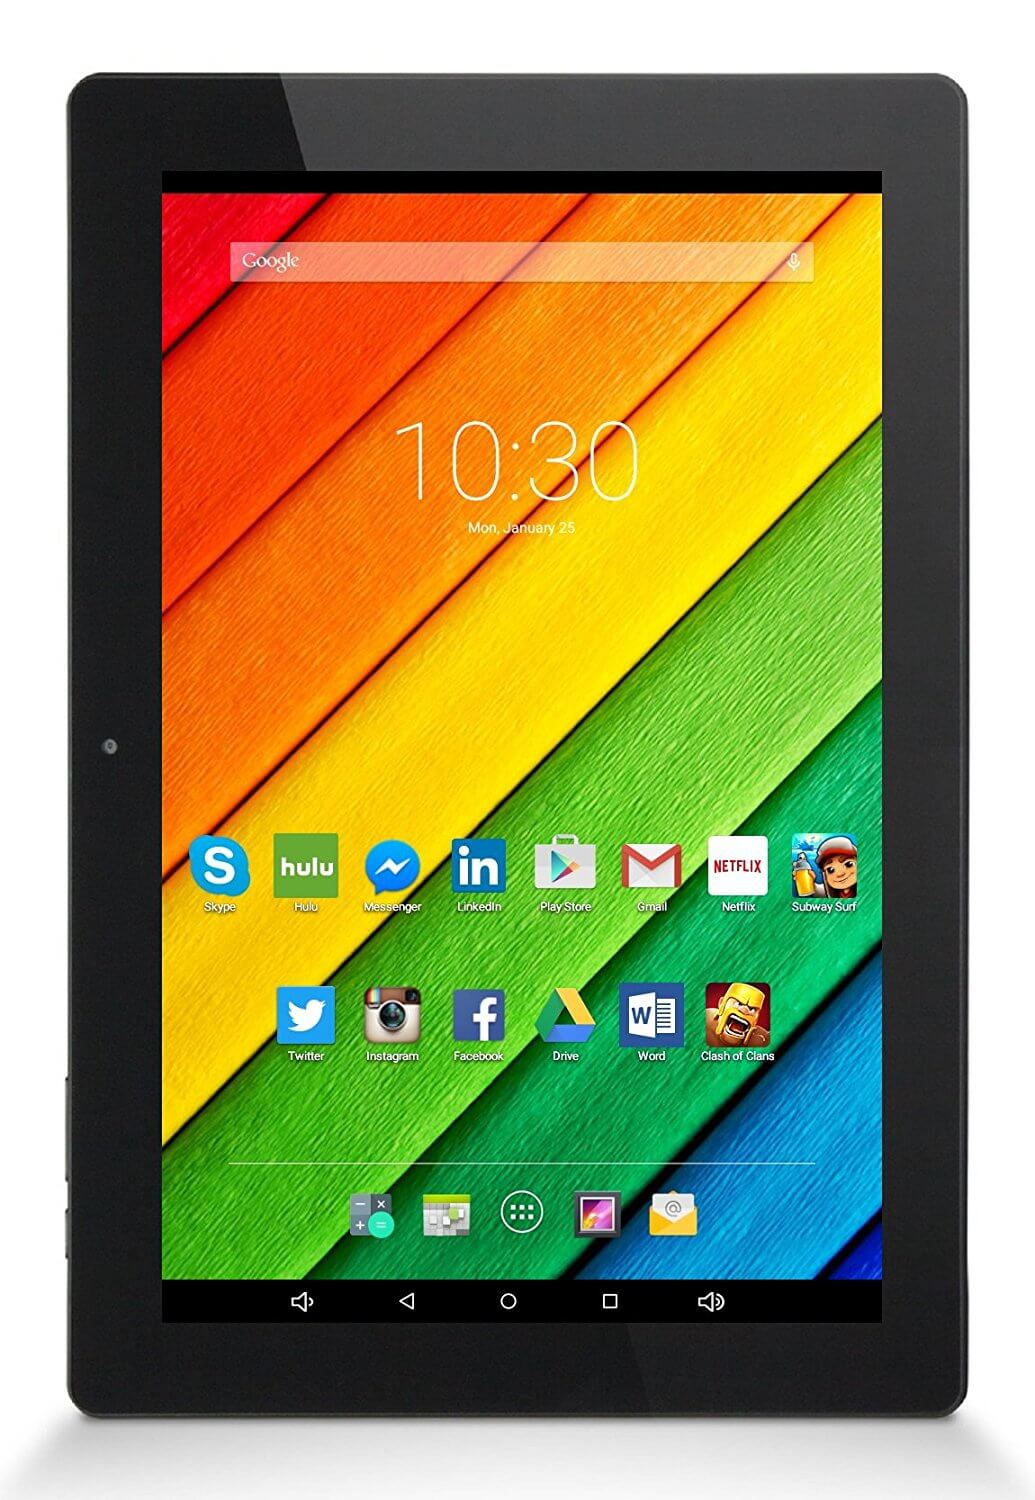 Astro Tab A10 Review Best Tablets under 100 Dollars